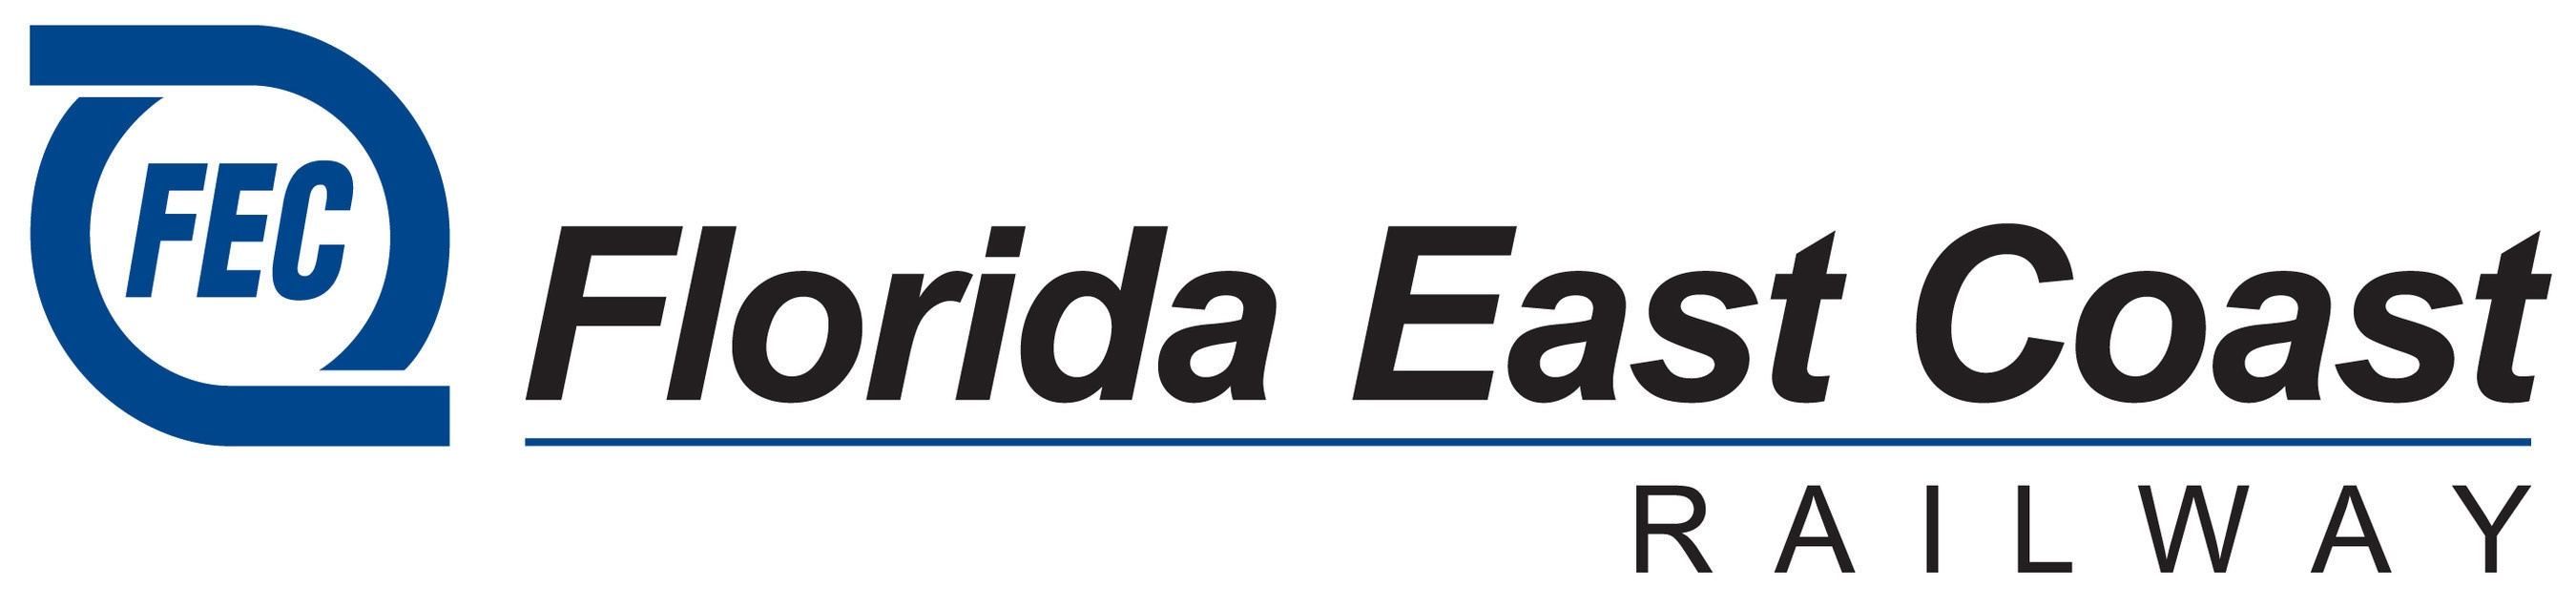 Florida East Coast Railway logo